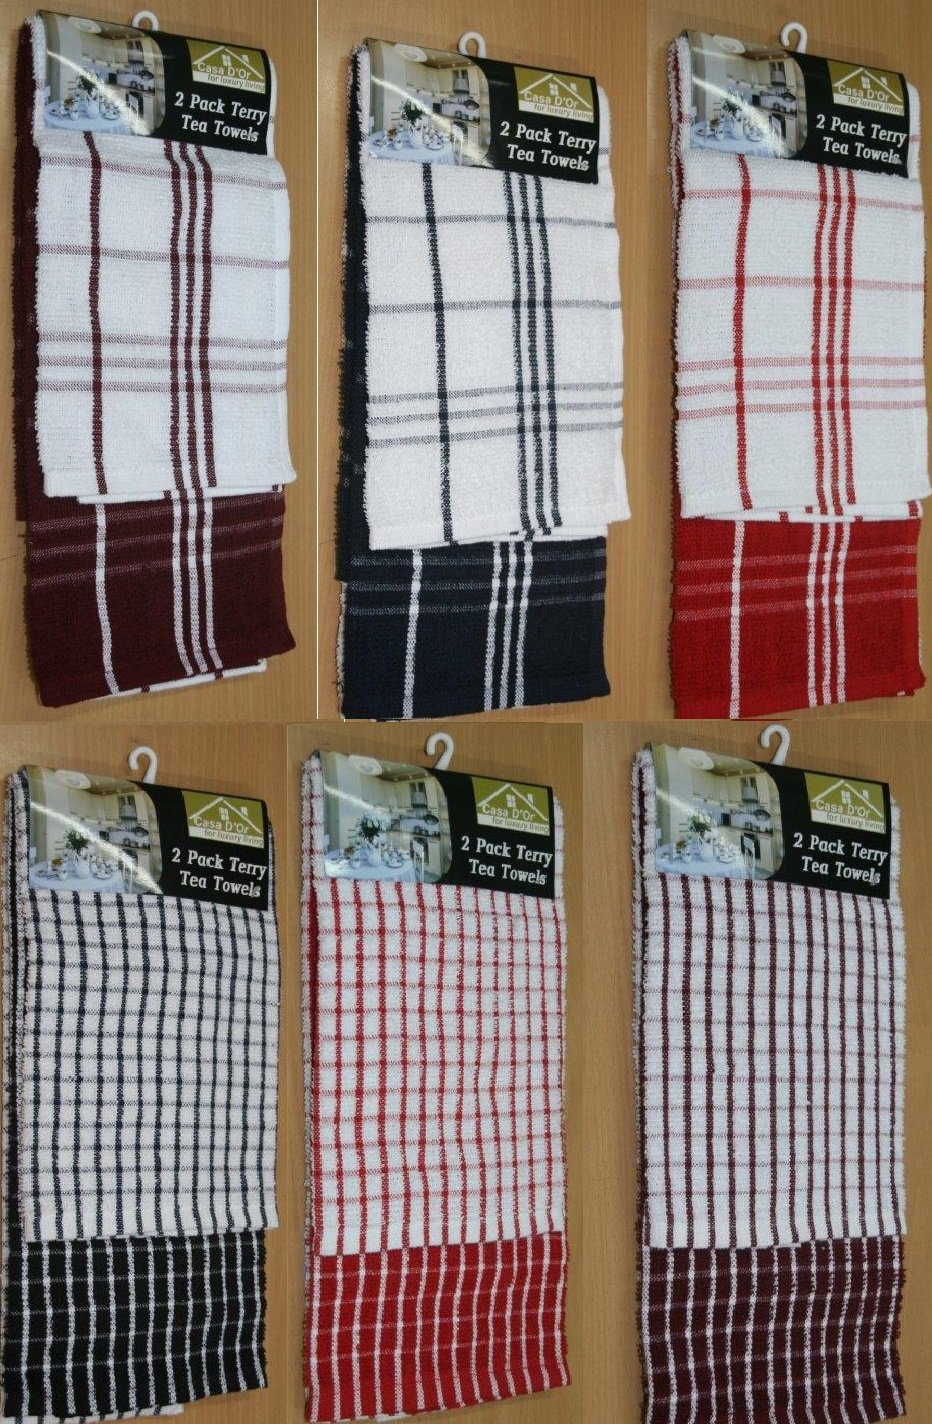 X LARGE JUMBO CHECK TERRY COTTON MULTI TEA TOWEL KITCHEN DISH CLEANING CLOTH SET PACK OF 12)